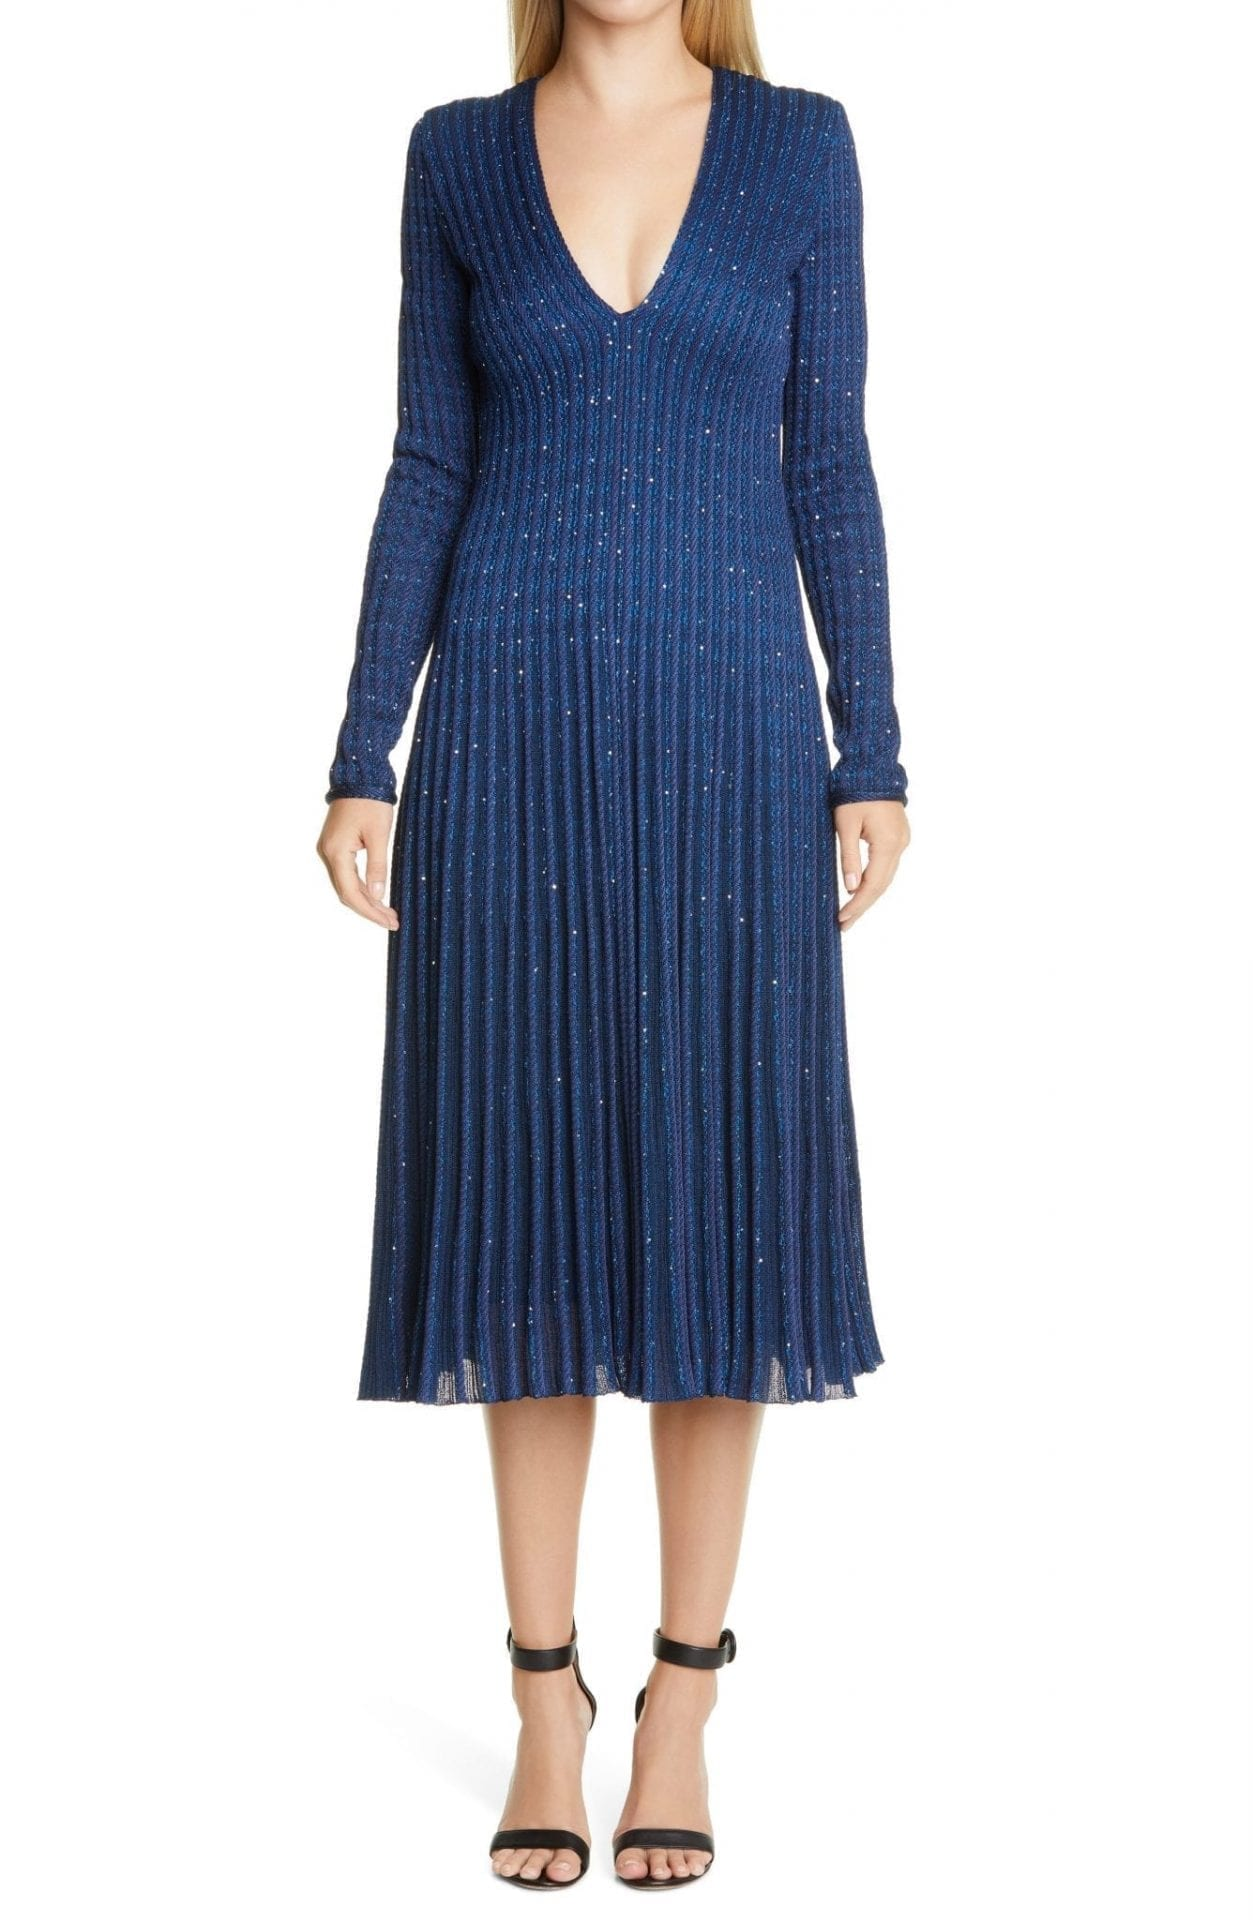 ST. JOHN EVENING Sequin Cable Knit Long Sleeve Sweater Dress